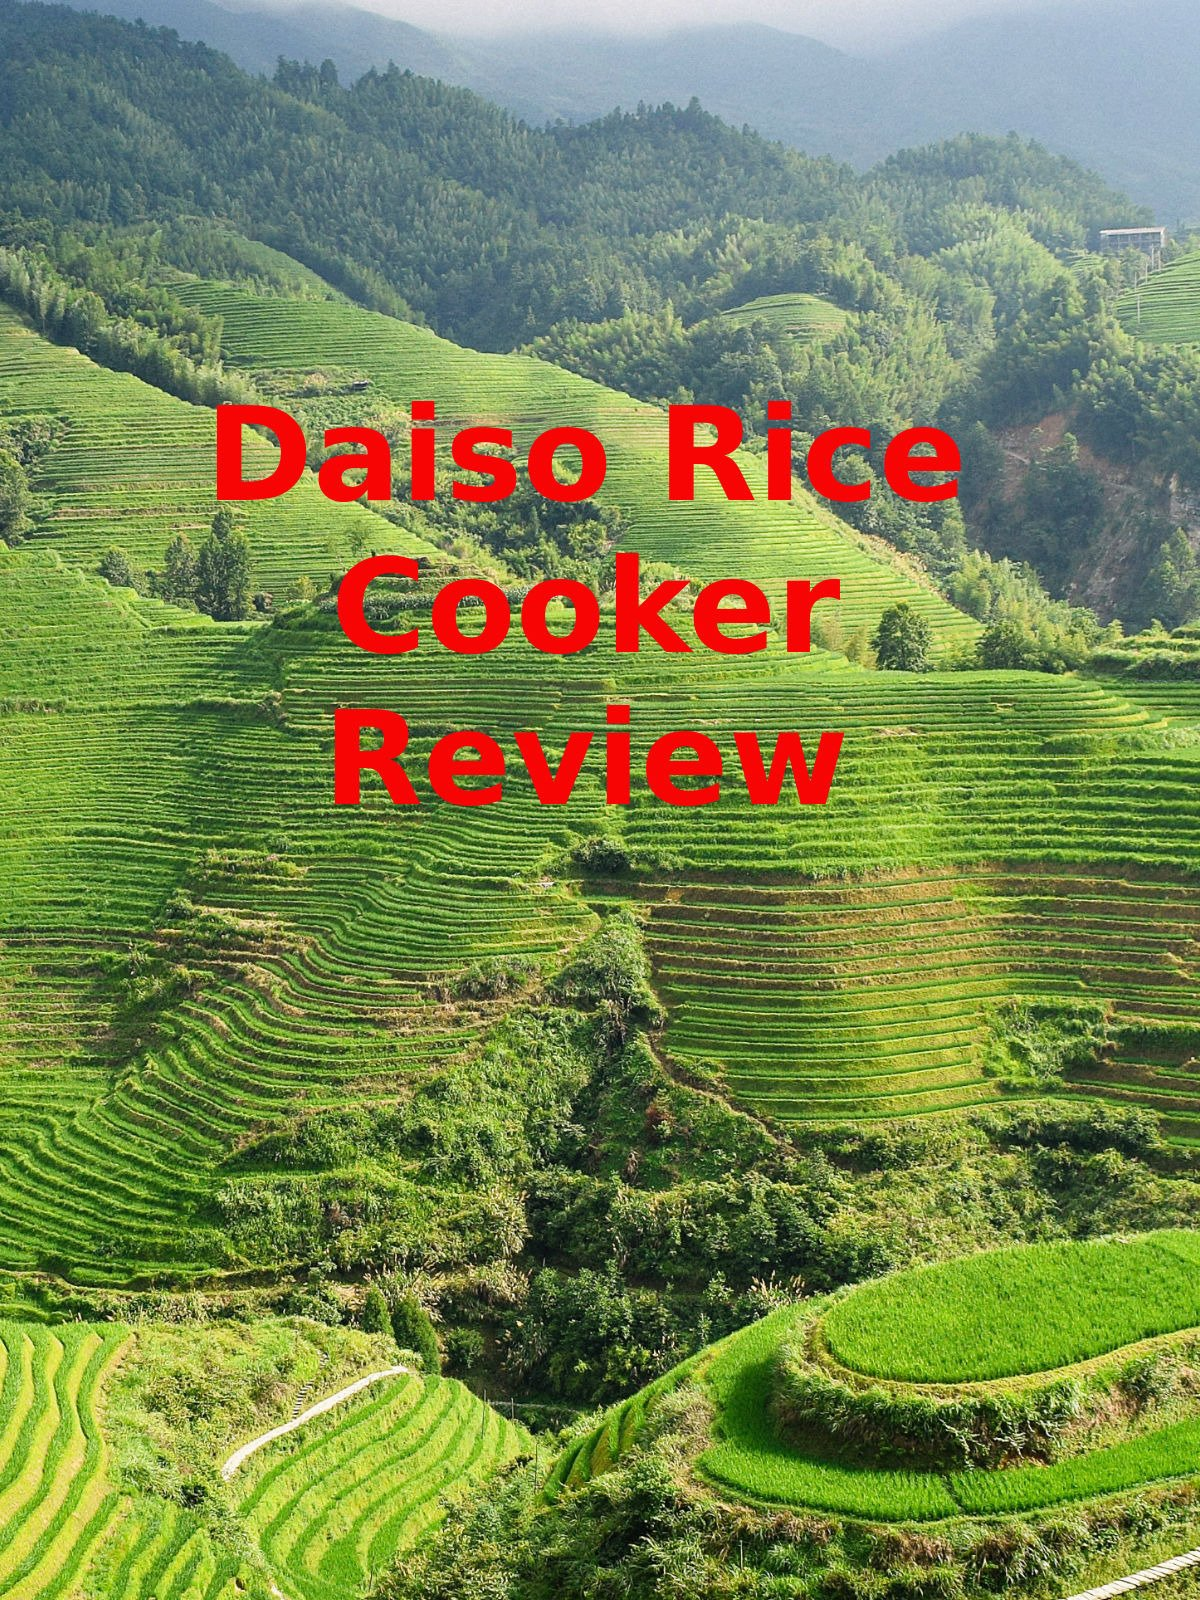 Review: Daiso Rice Cooker Review